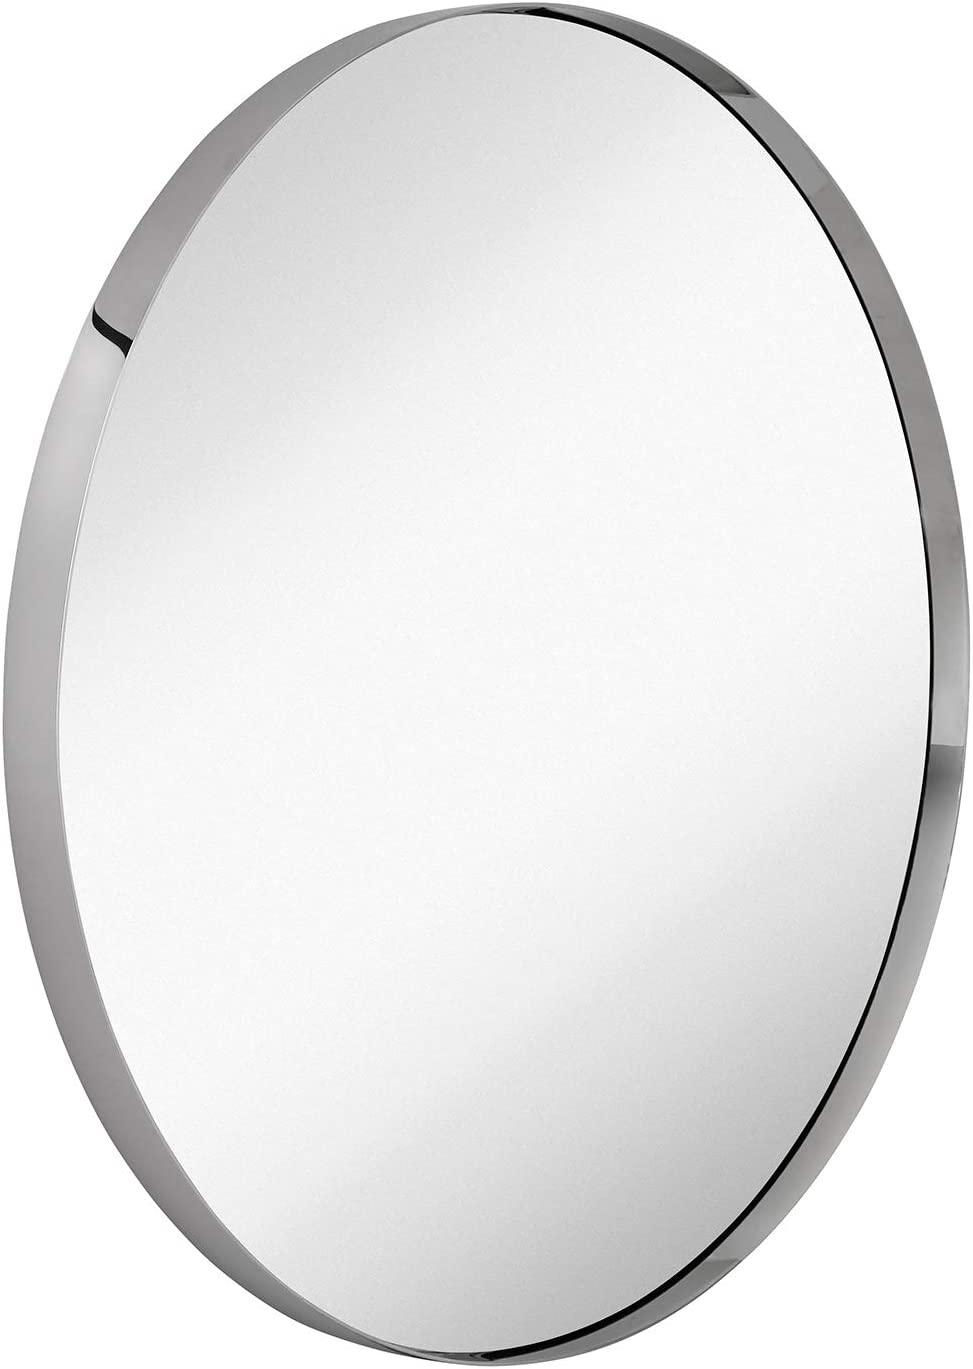 Hamilton Hills Contemporary Polished Metal Silver Circle Wall Mirror Glass Panel Silver Framed Rounded Circle Deep Set Design 35 Round